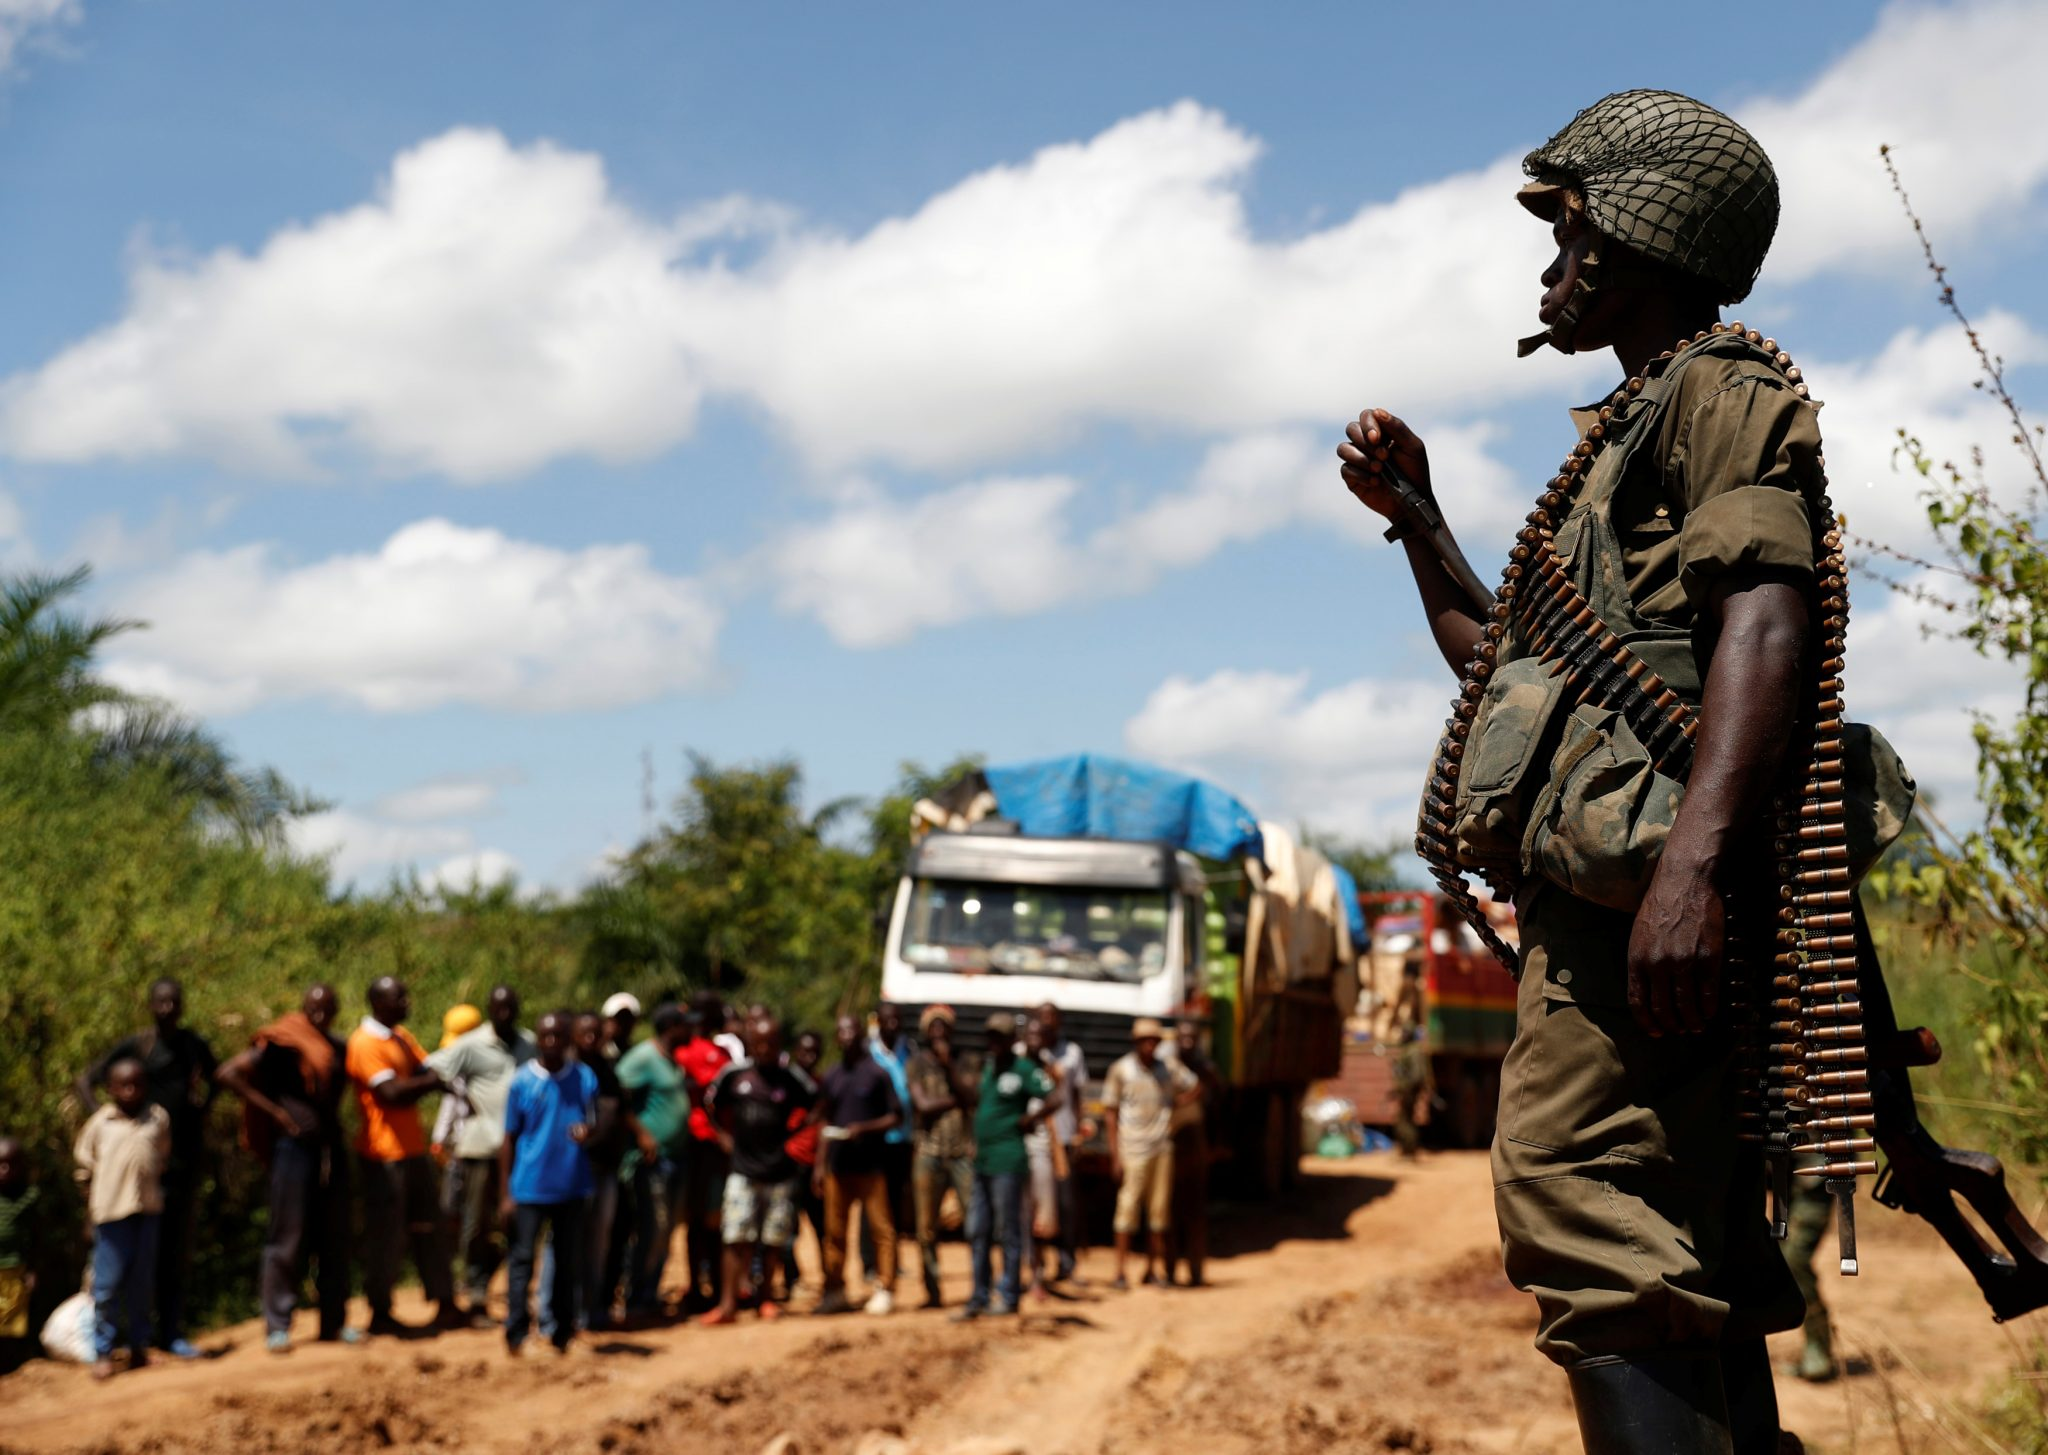 A Congolese soldier from the Armed Forces of the Democratic Republic of Congo (FARDC) stands in front of trucks who are stuck because of mud on the road as he searches with other soldiers for Mai-Mai Yakutumba rebels in Namoya, Maniema Province, eastern Democratic Republic of the Congo, April 29, 2018 | REUTERS